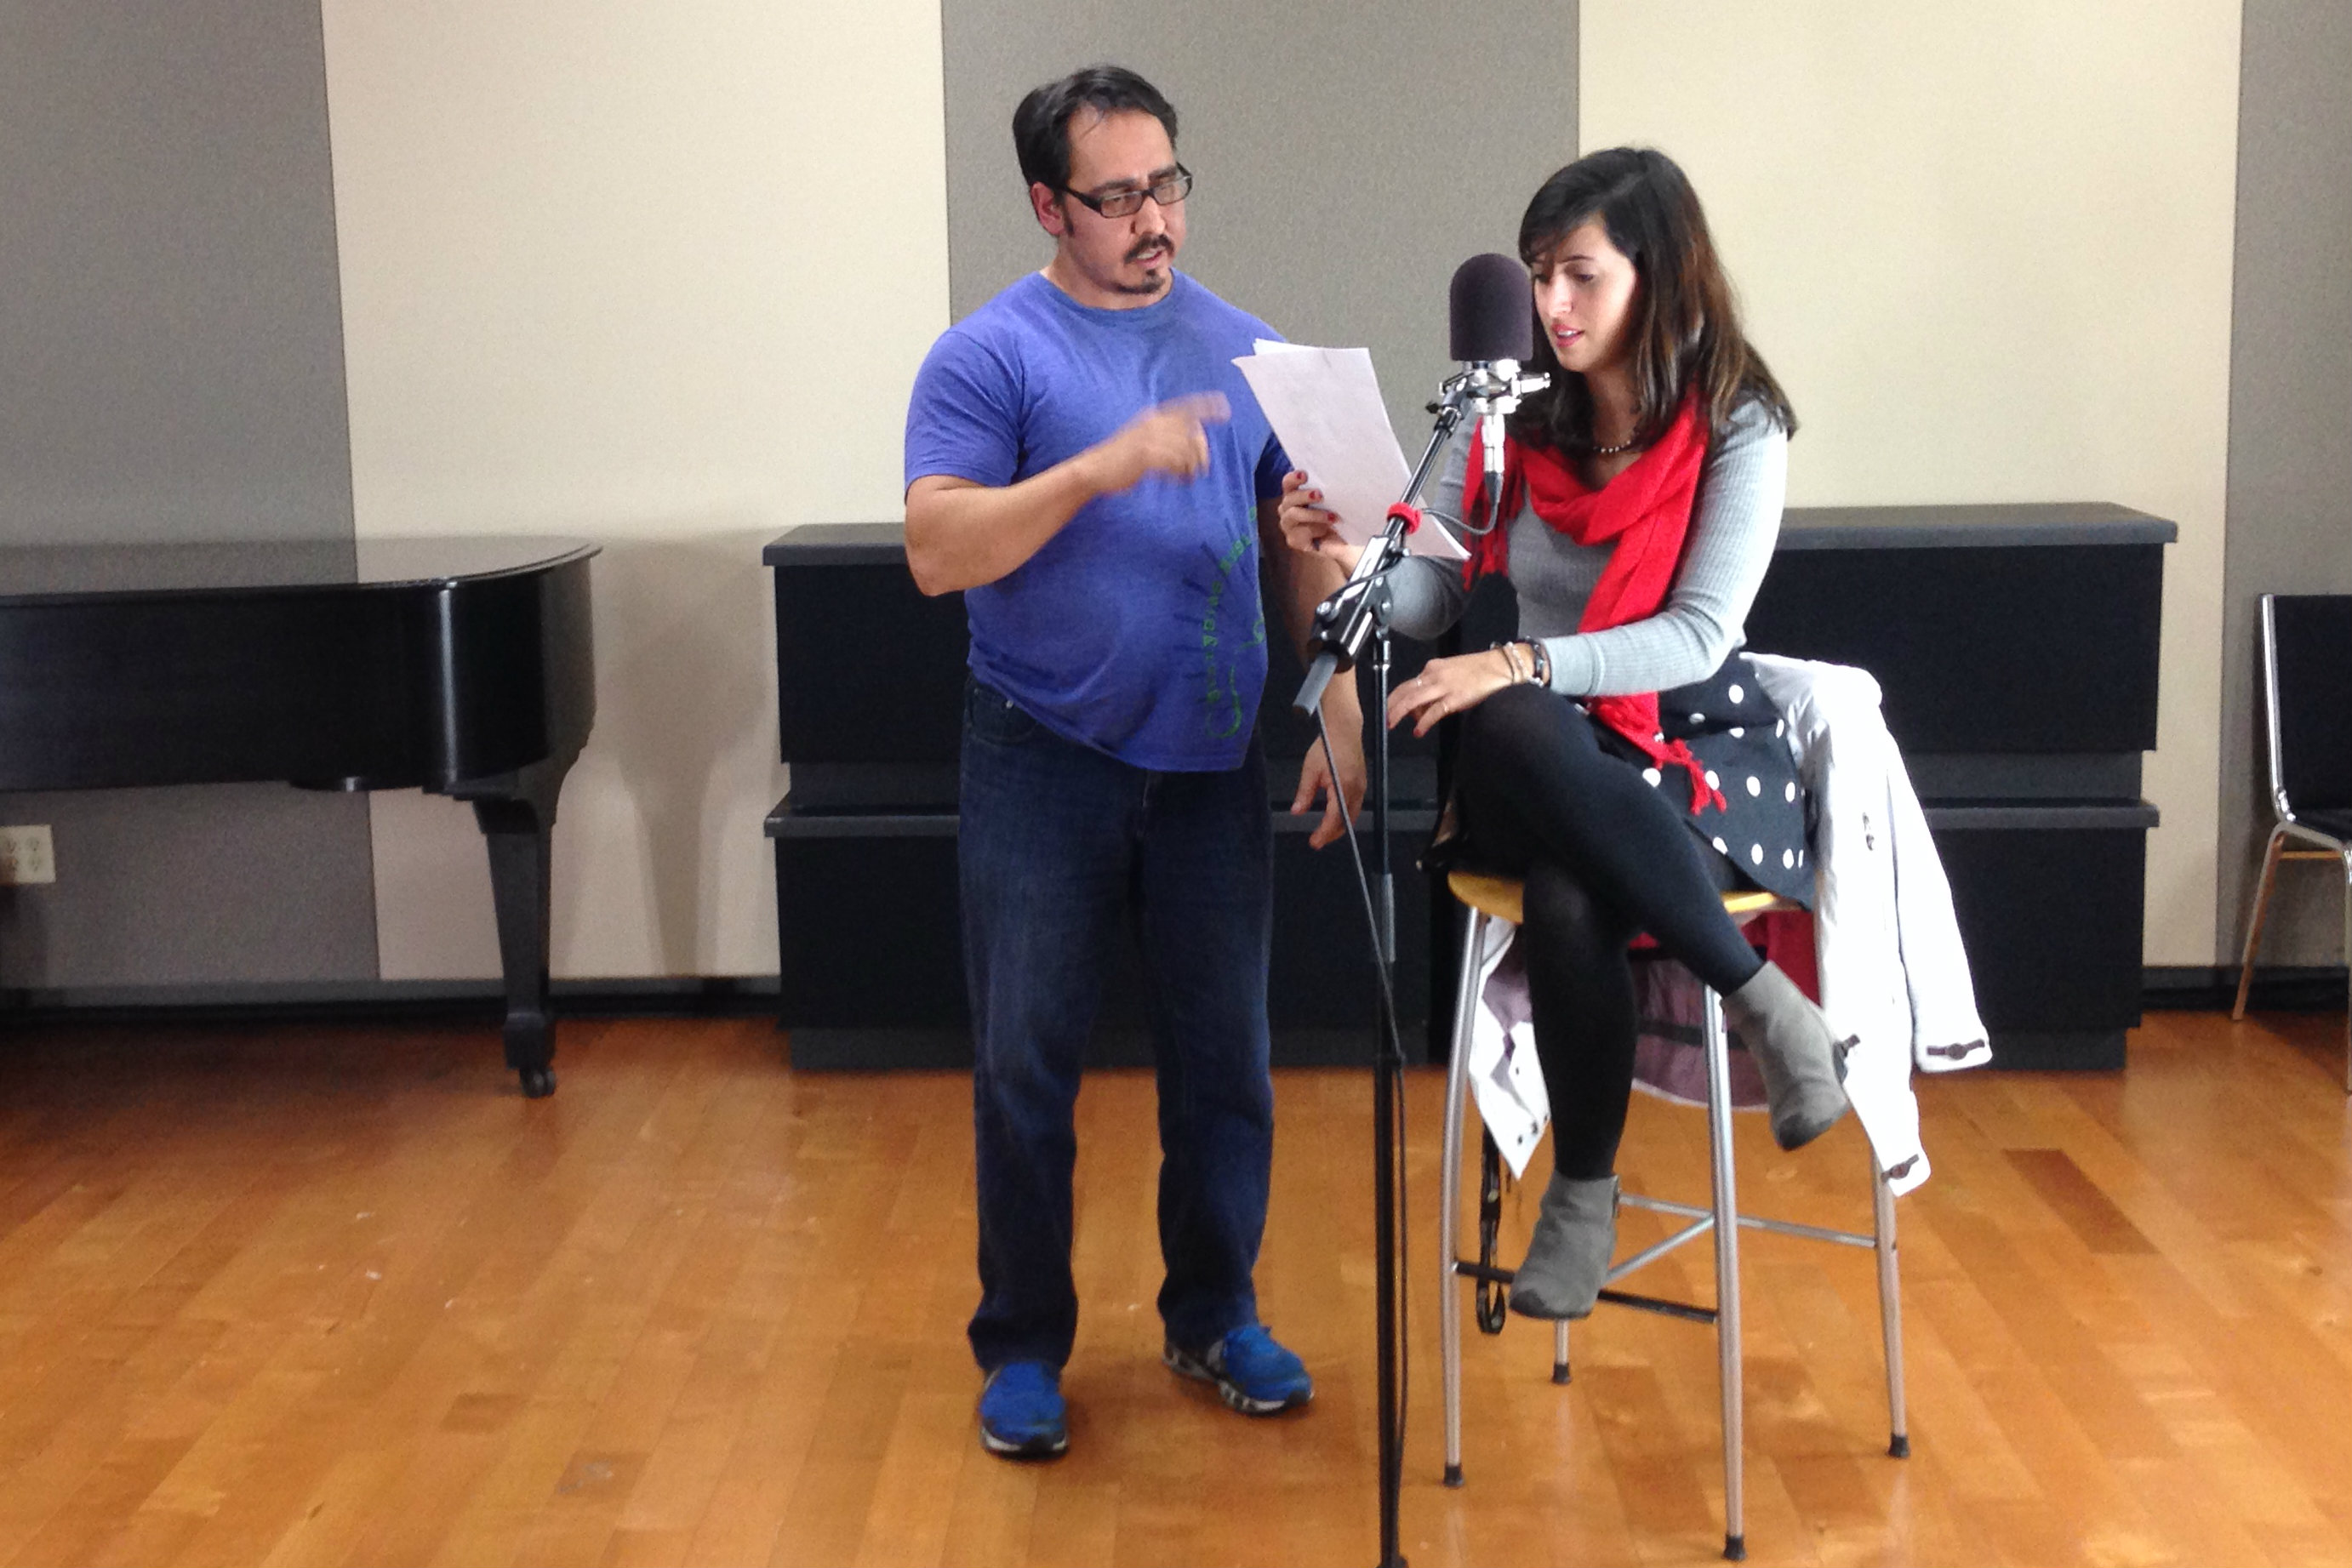 PHOTO: Jose Antonio Mercado directs Ana Dorta